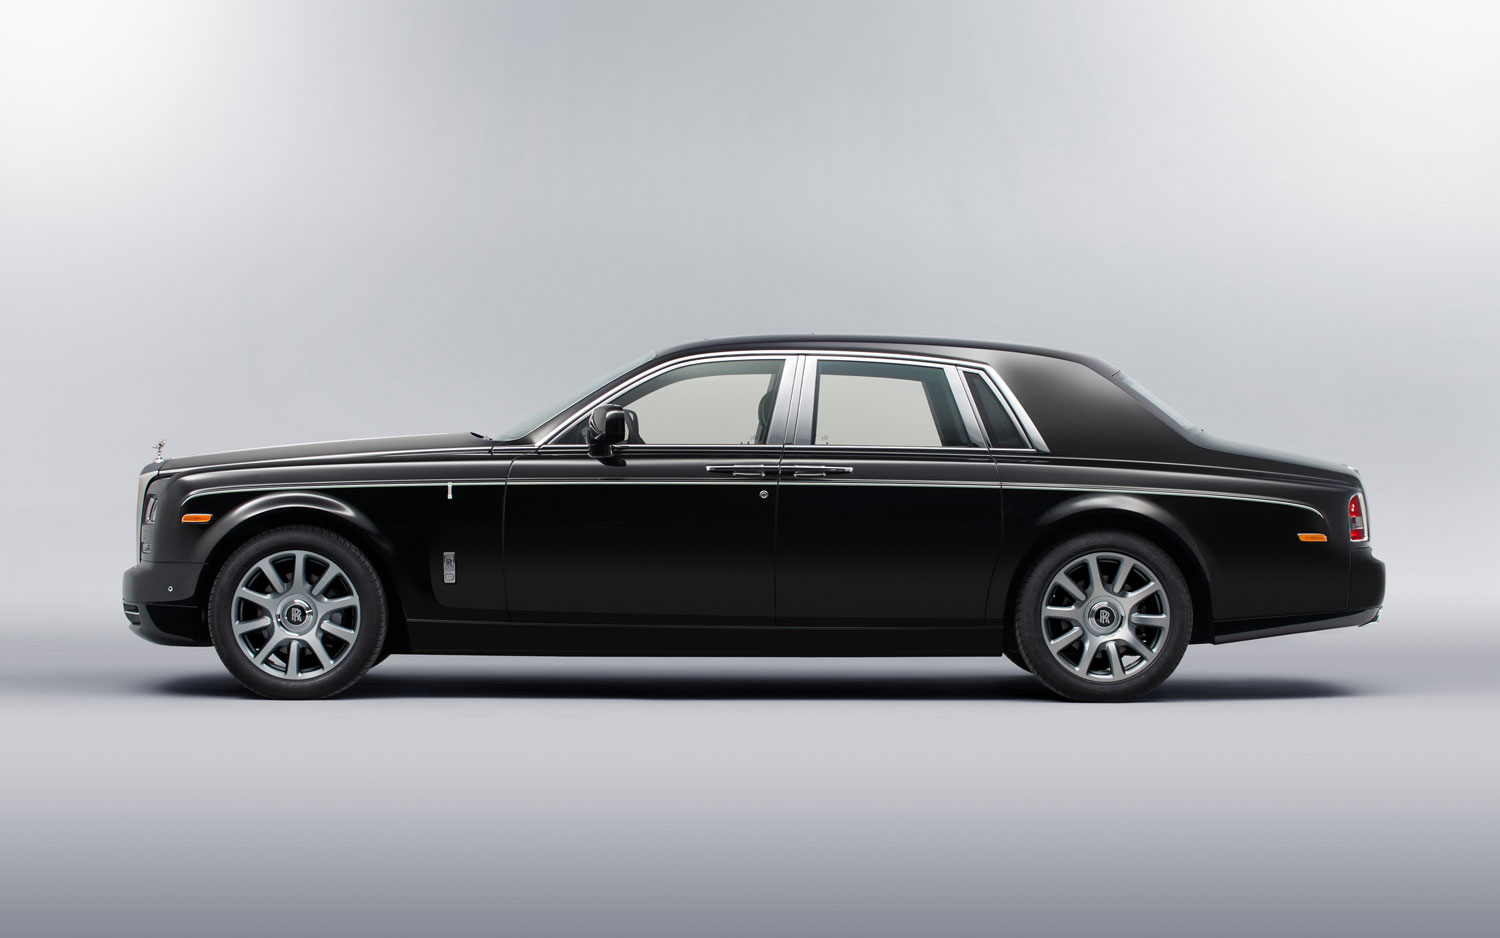 Rolls-Royce_Phantom_Side_Profile